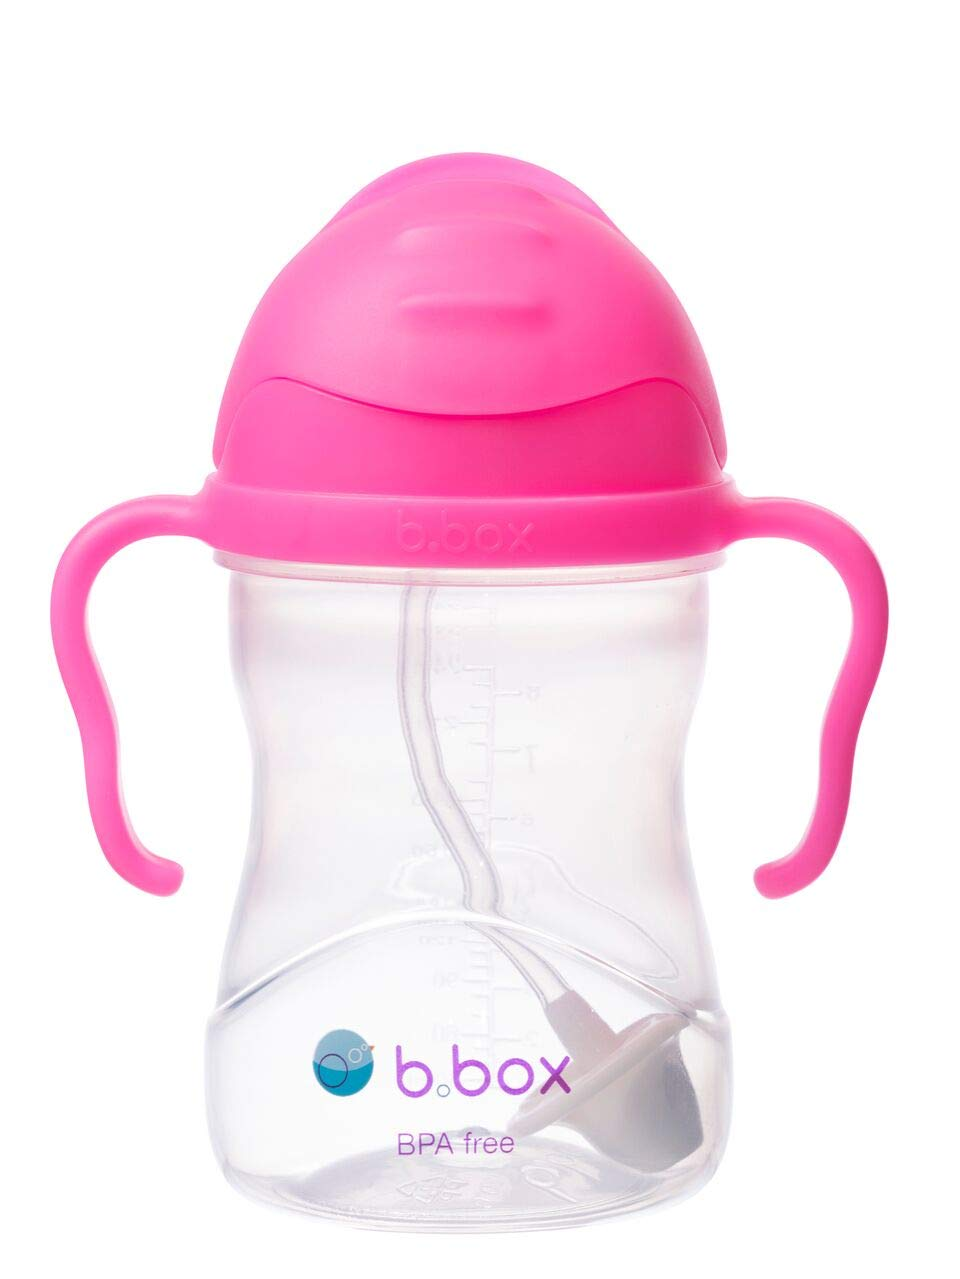 b.box Sippy Cup with Innovative Weighted Straw, Pink Pomegranate (Matte Lid)